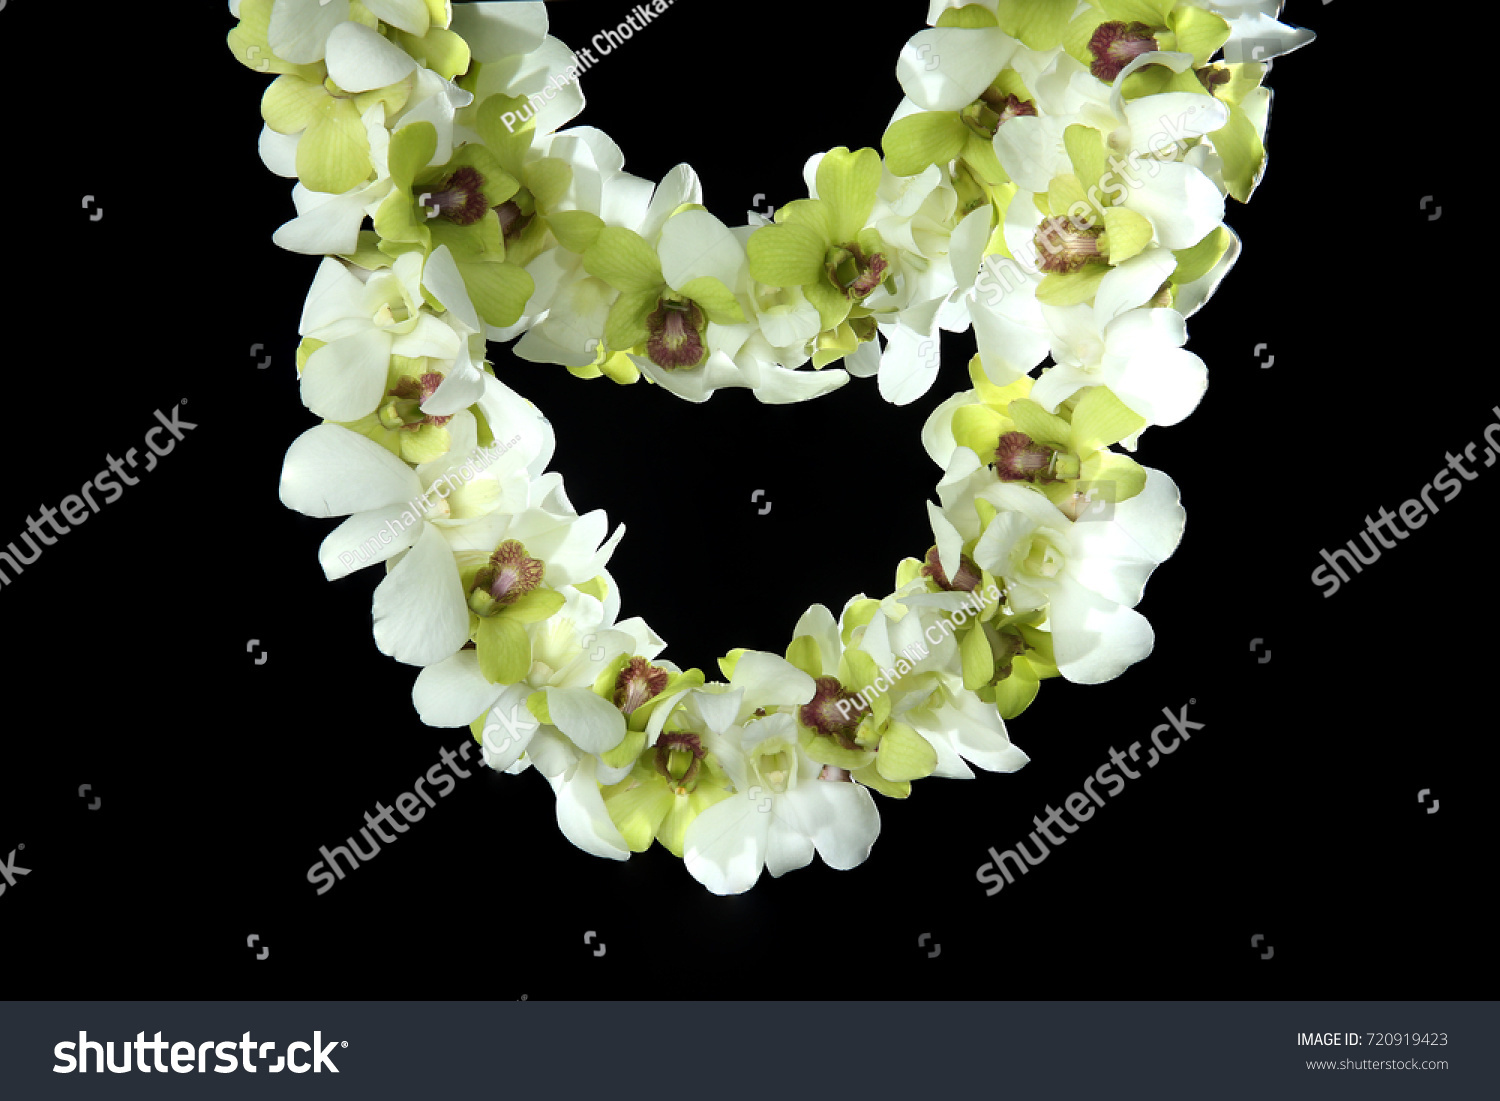 Hawaii flowers lei necklace made orchid stock photo 720919423 hawaii flowers lei necklace made from orchid flower on black background izmirmasajfo